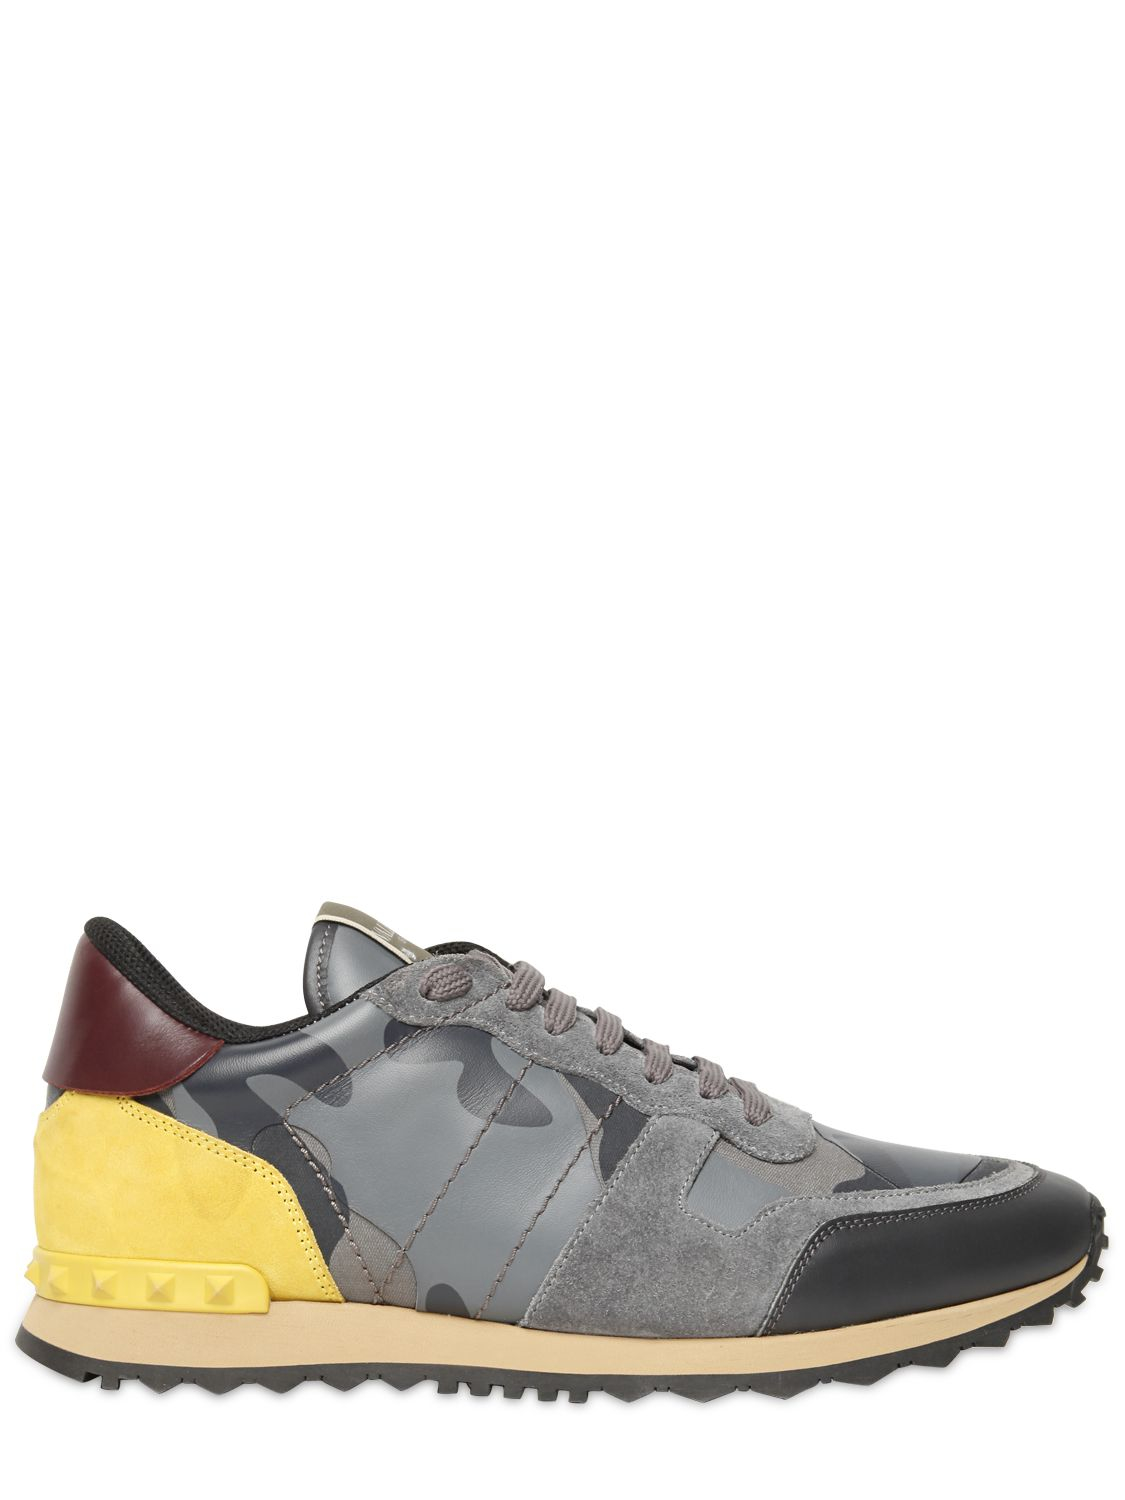 valentino rockstud camo canvas leather sneakers in gray